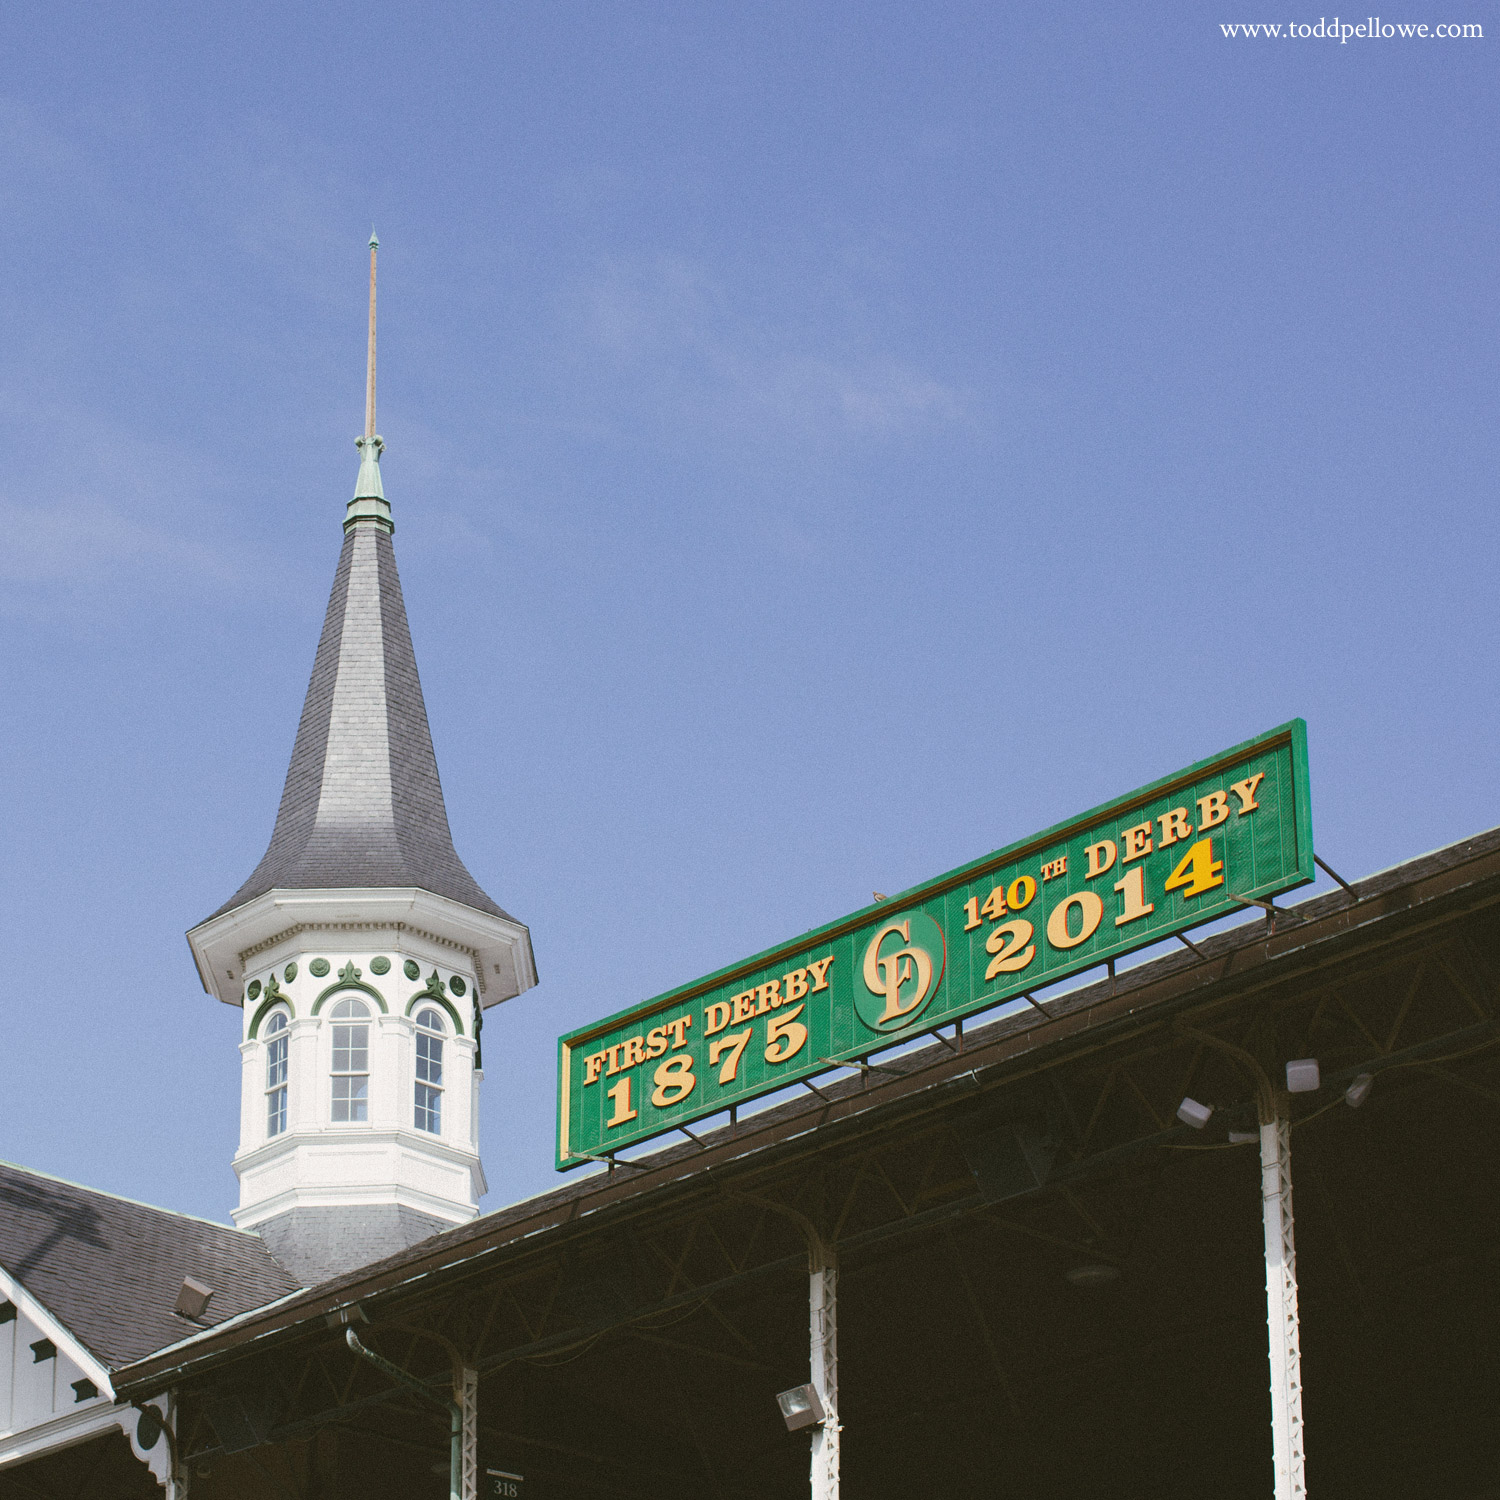 05-kentucky-derby-140-2014-006.jpg